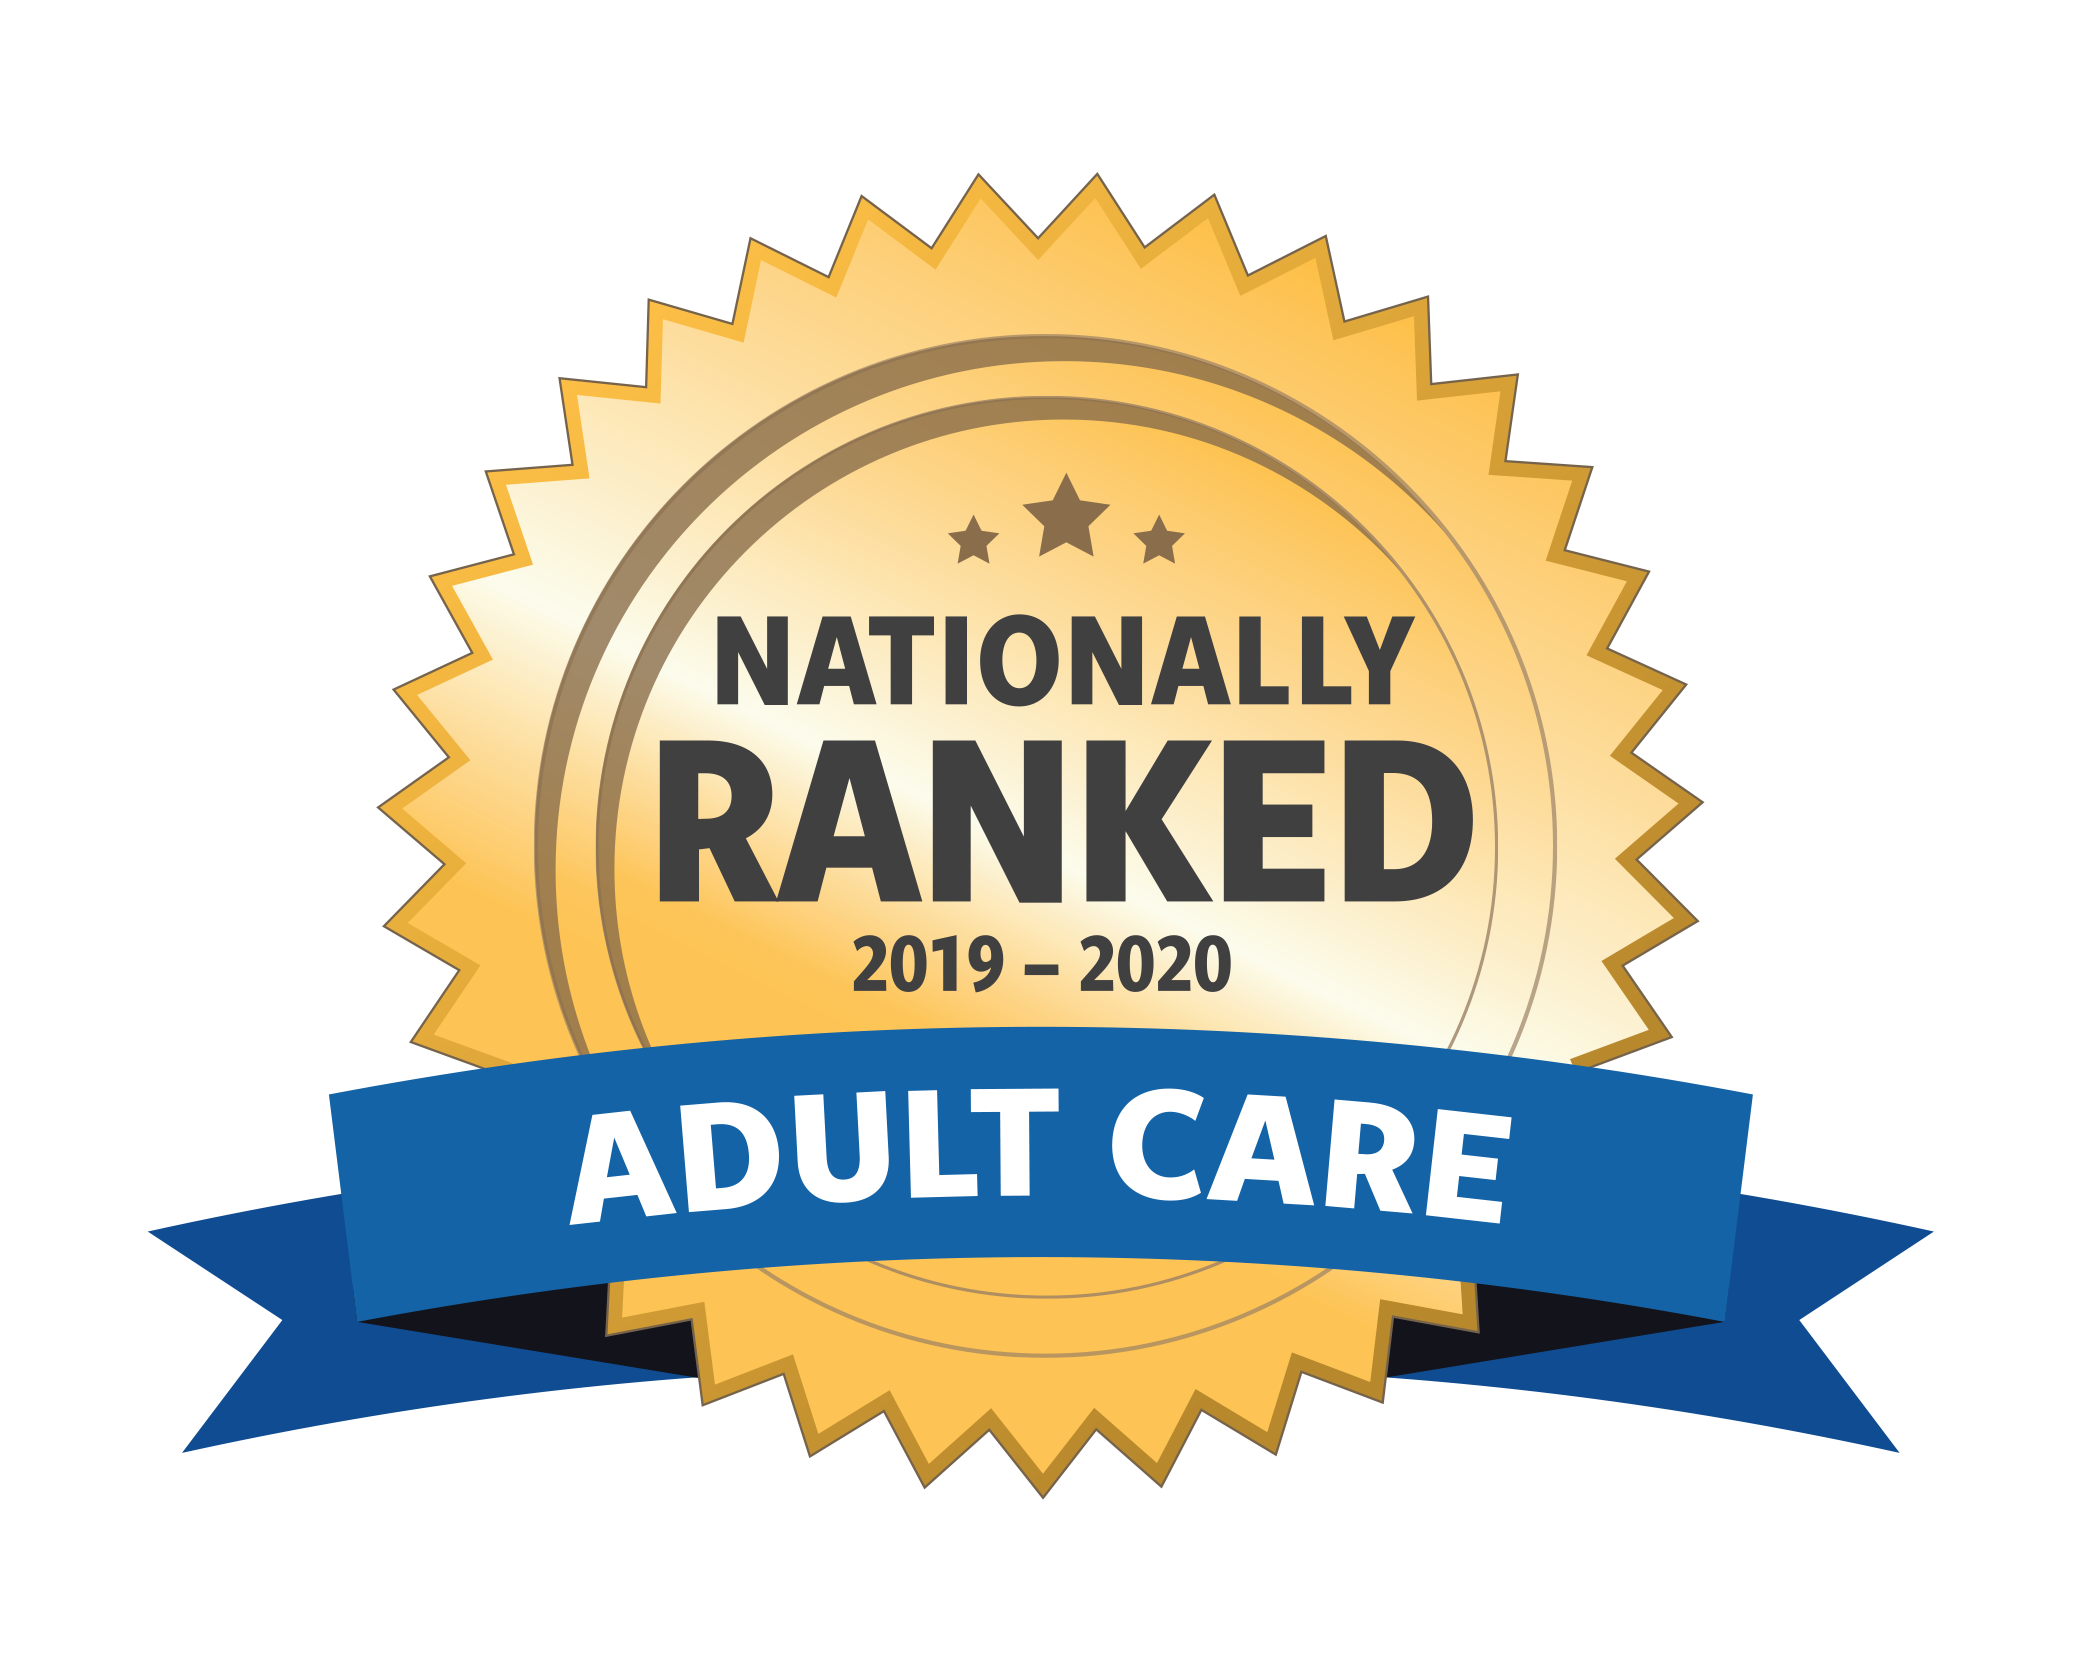 Nationally Ranked Adult Care Badge